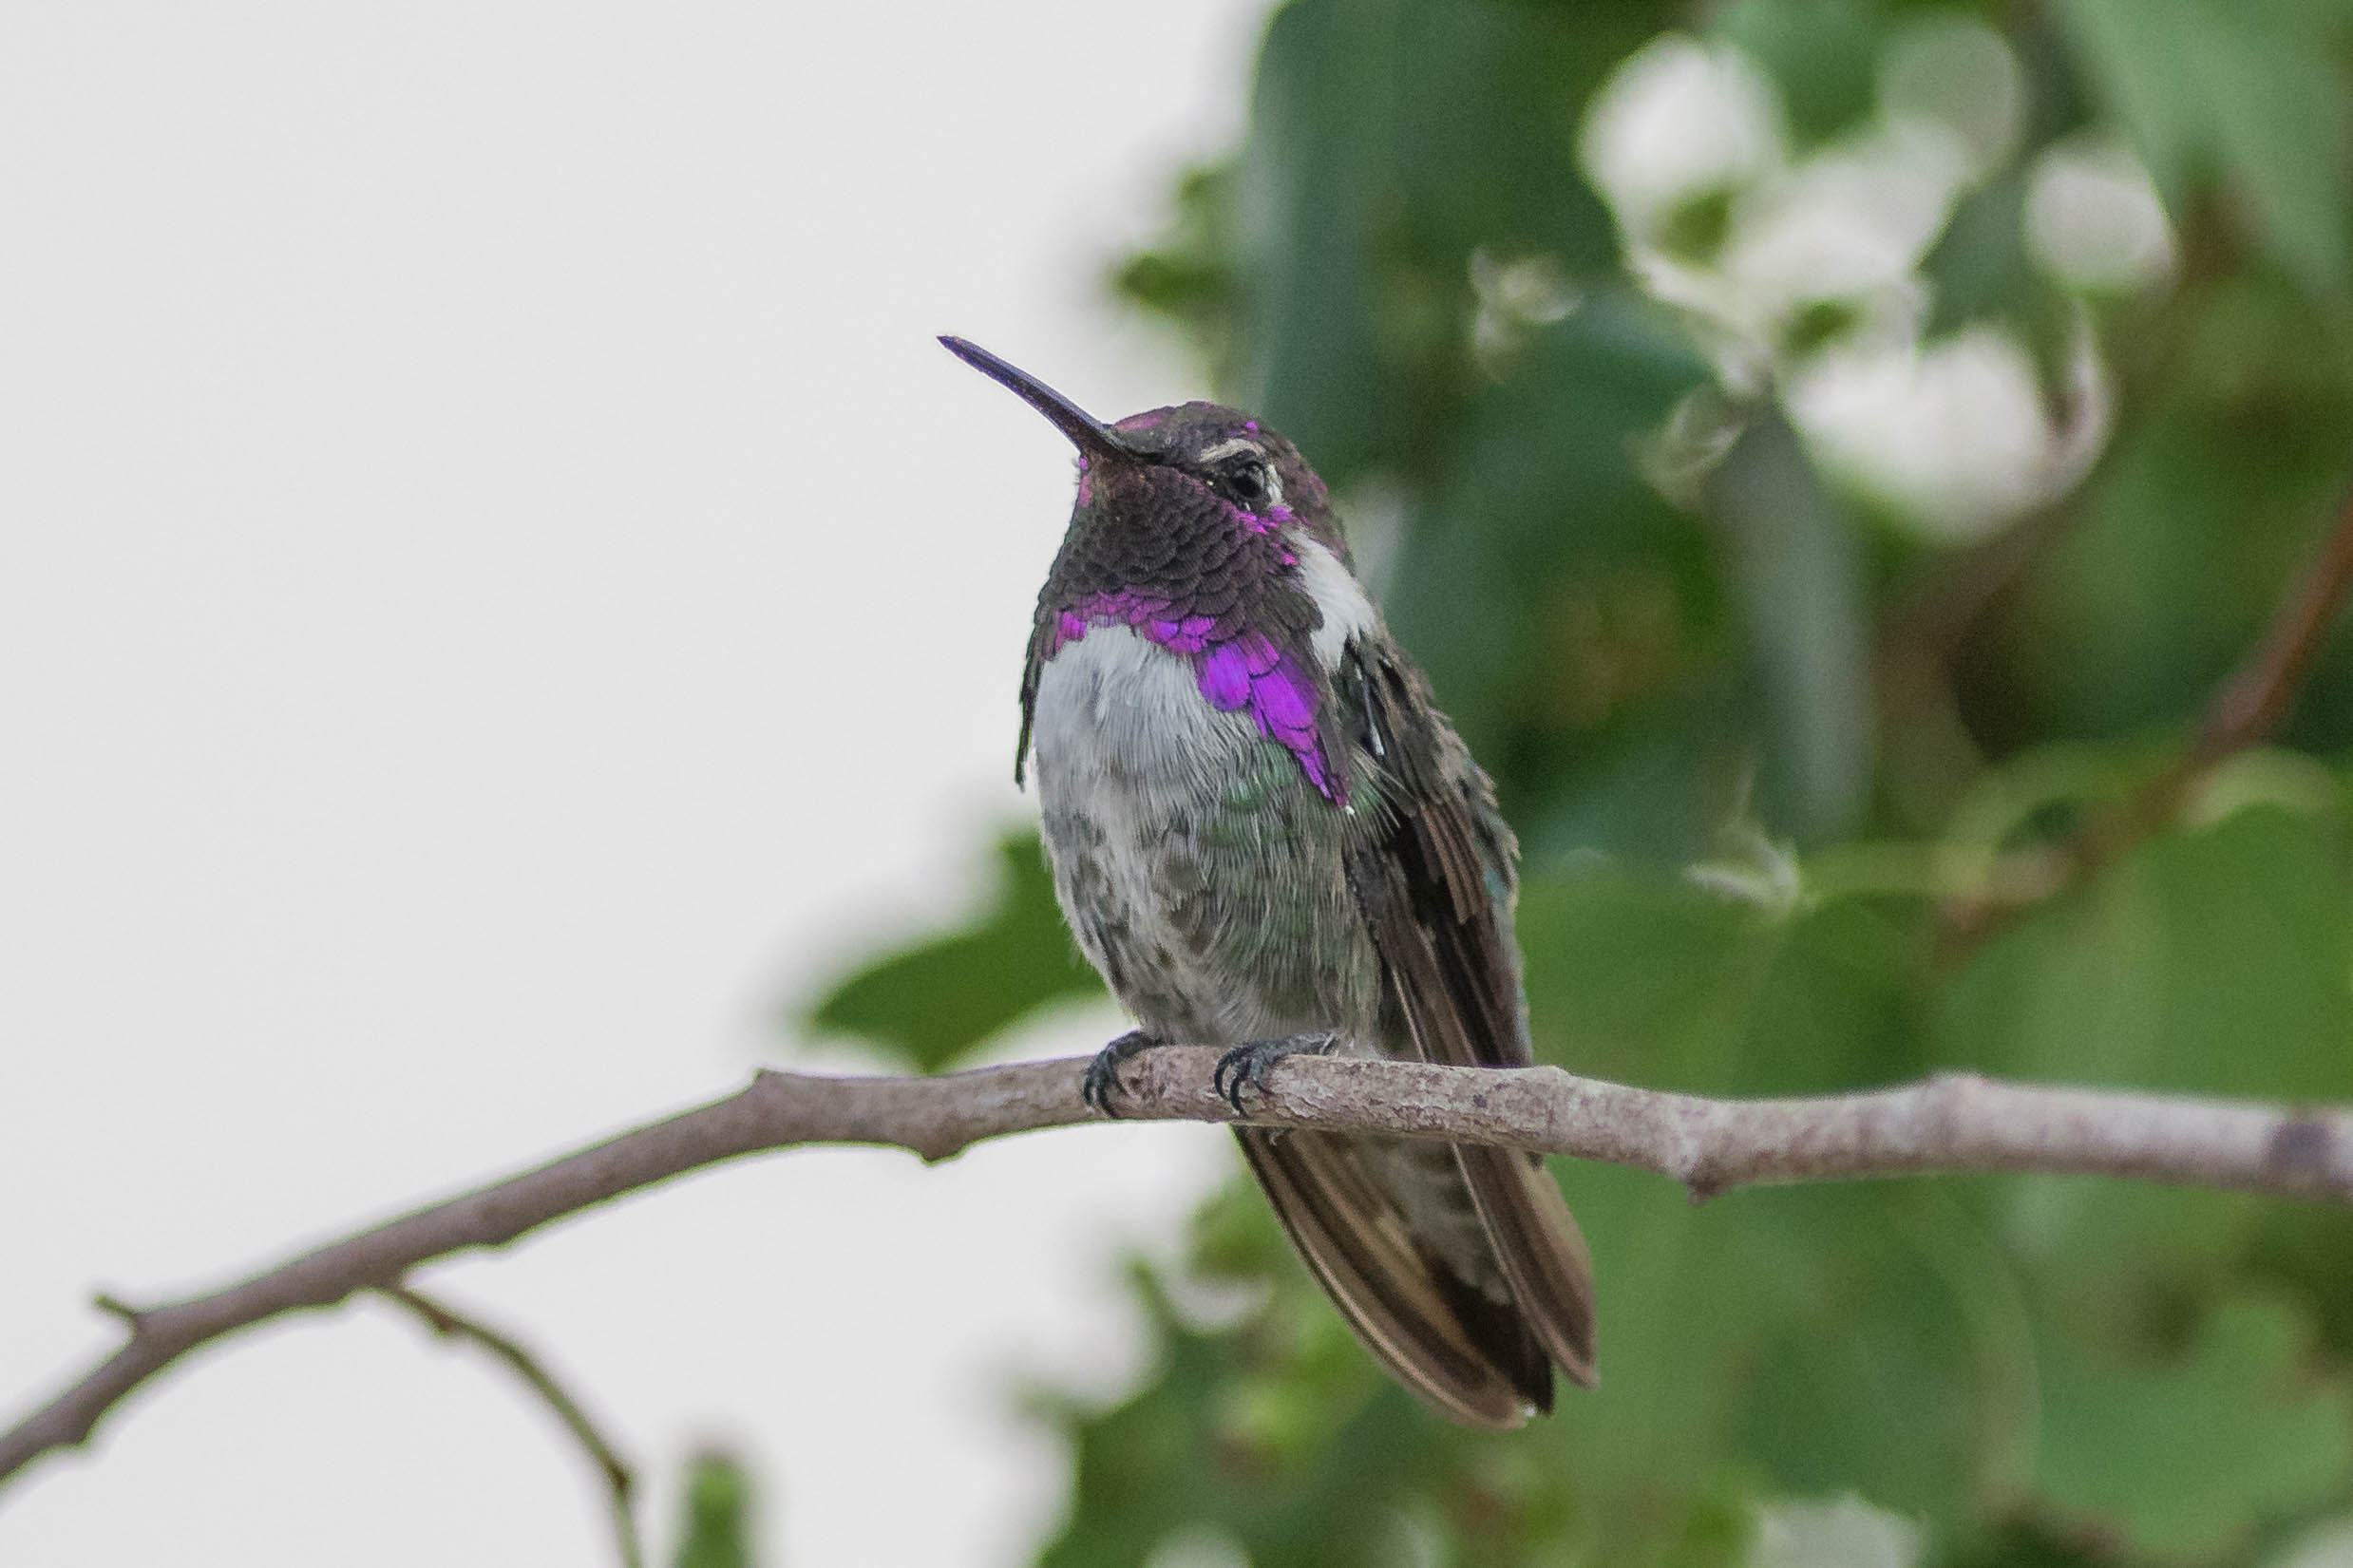 Costa's Hummingbird (Calypte costae) - Yard, WAS (NV) Juy-2018  Last year I had 4 species of hummingbirds coming to my feeders but in 2018 I had 5 with this rare male Costa's.